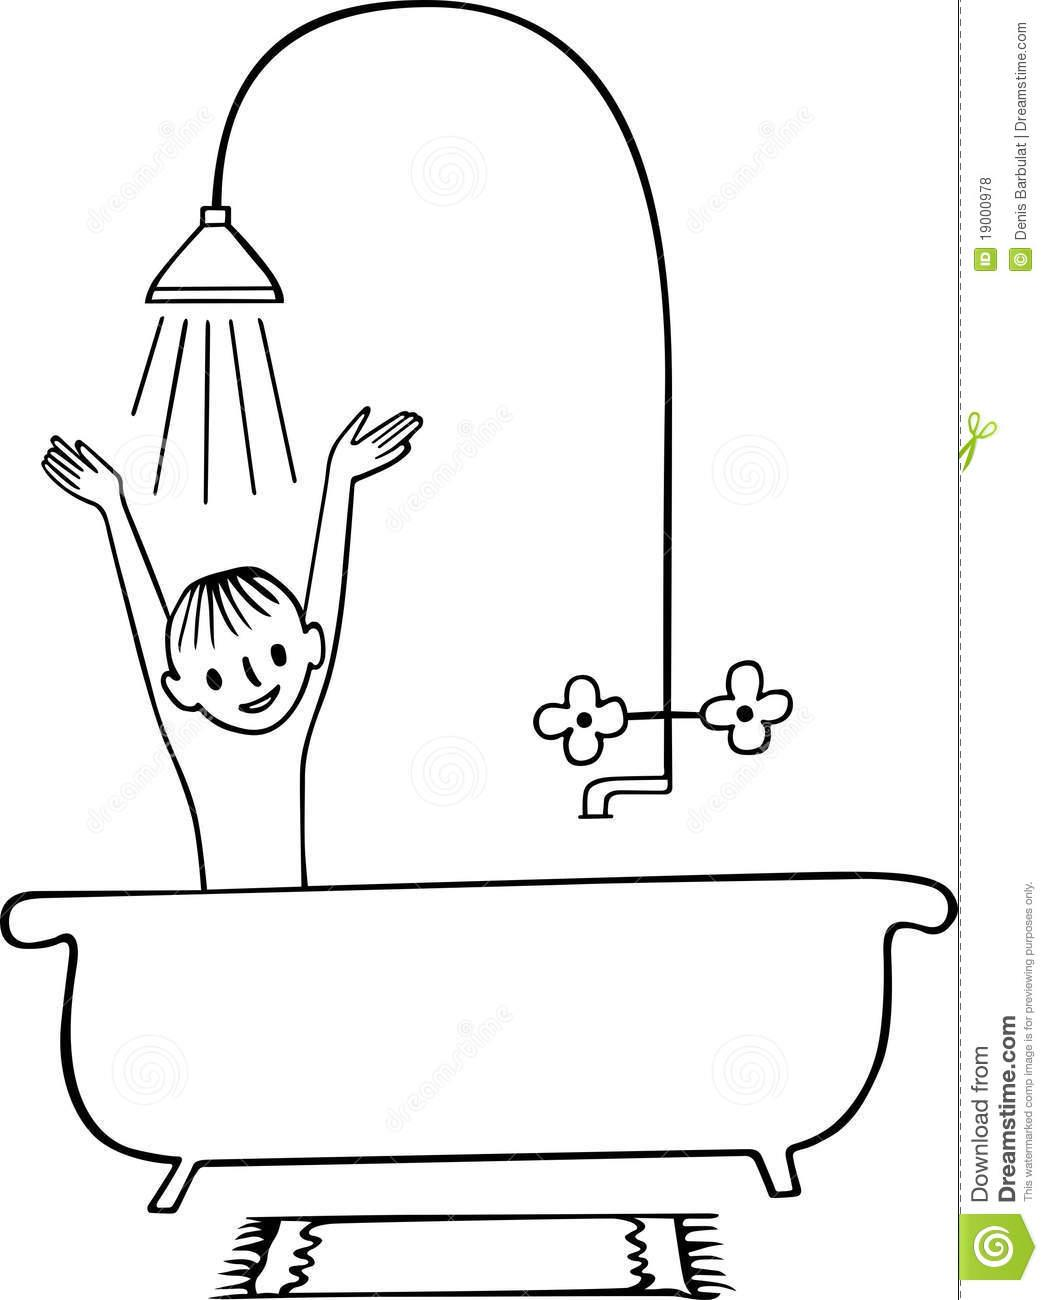 Take a shower clipart black and white clipart freeuse Bath Clipart Black And White - HOME INSPIRATION clipart freeuse